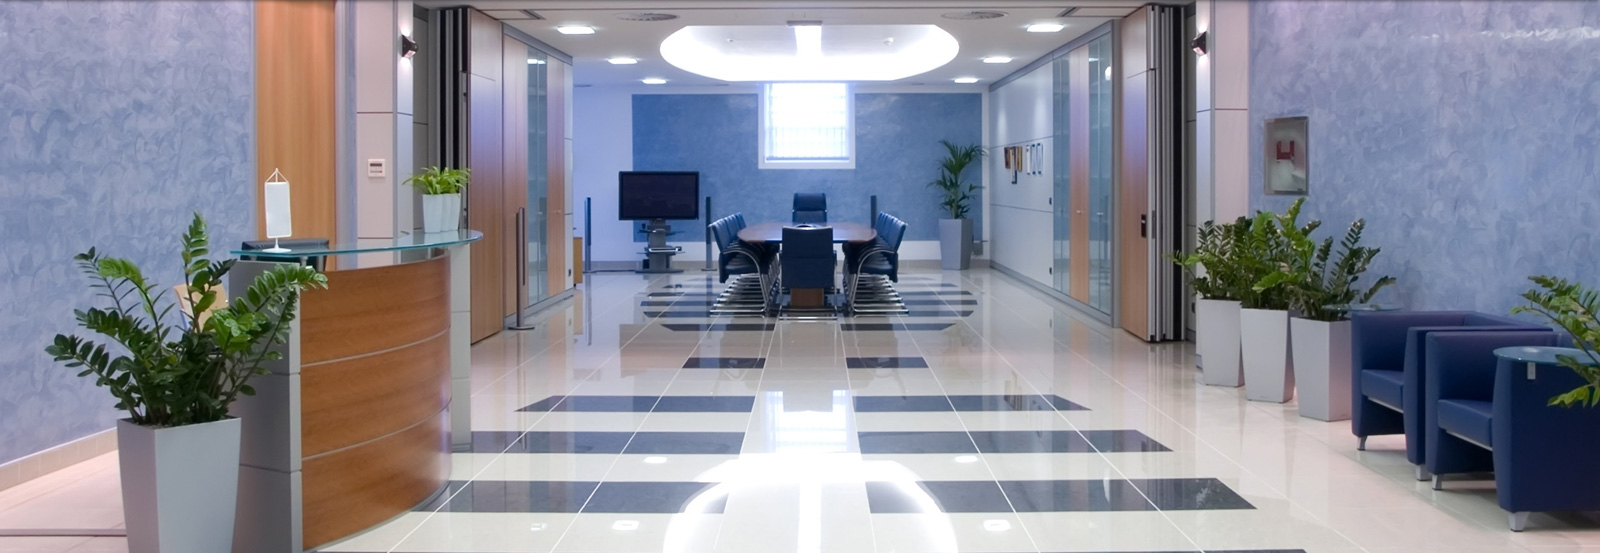 banner image to portray Commercial Office Cleaning and Janitorial Services